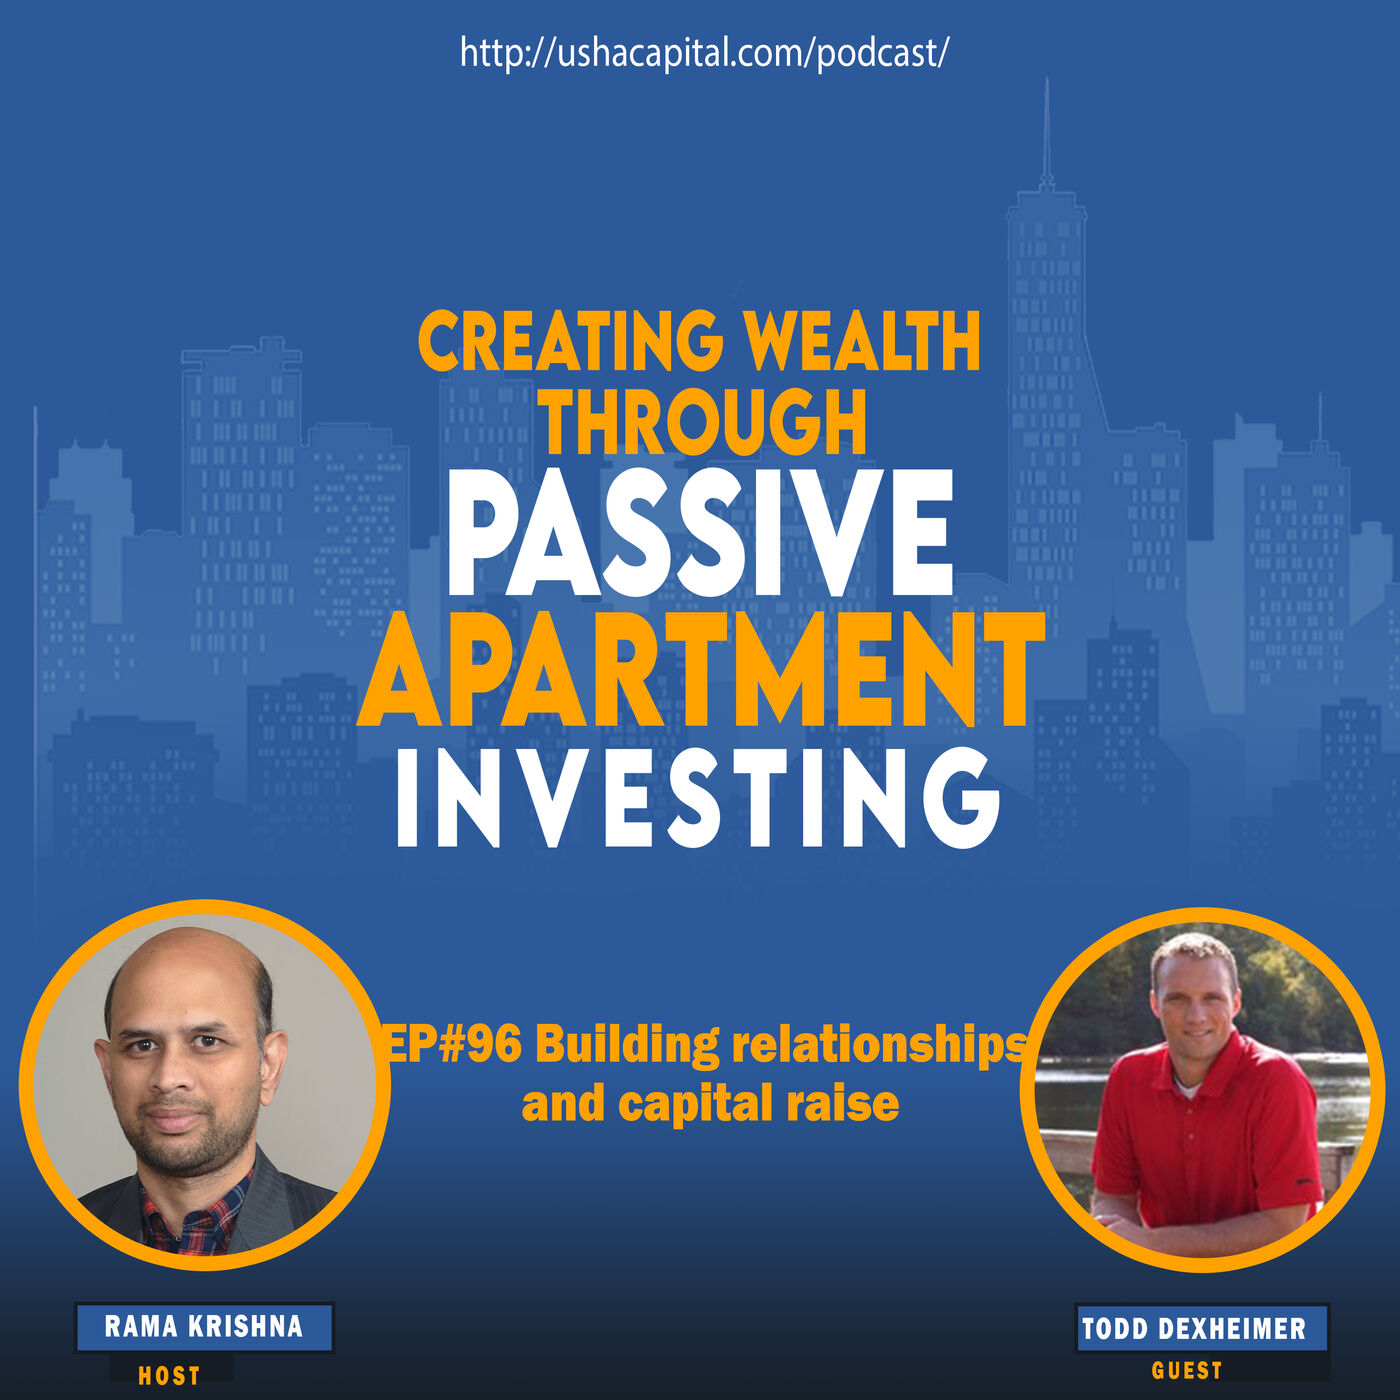 EP#96 Building relationships and capital raise with Todd Dexheimer